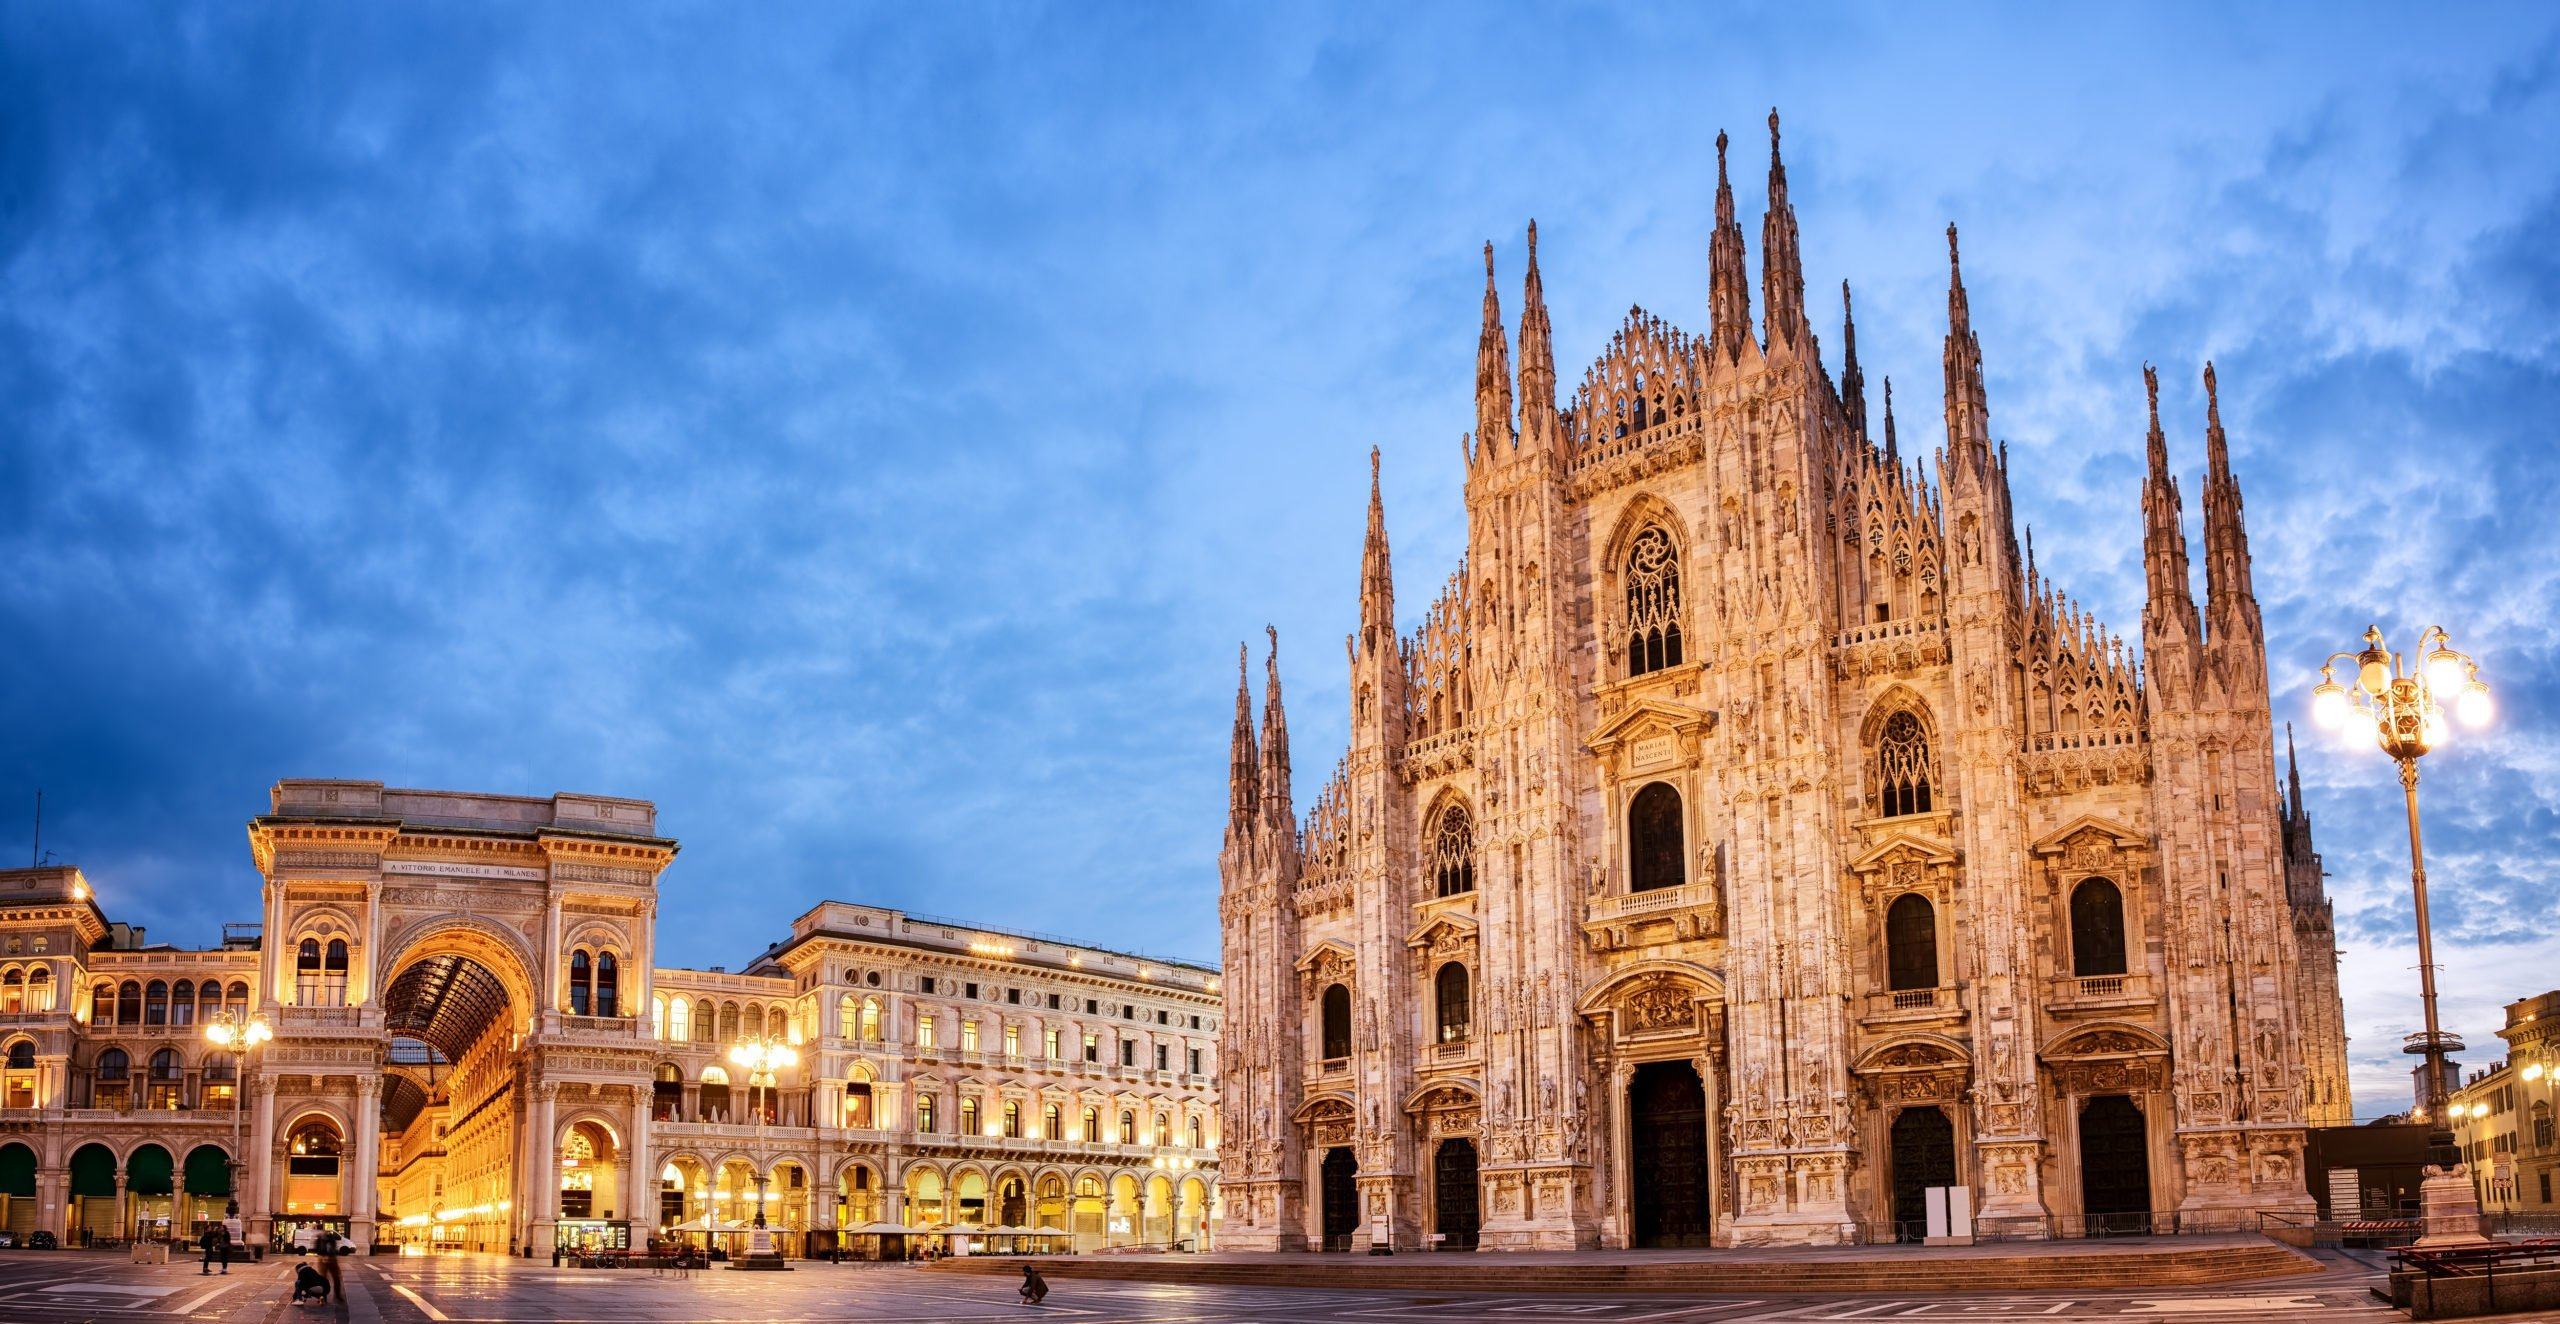 Explore The Duomo During The Insider Milan City Tour